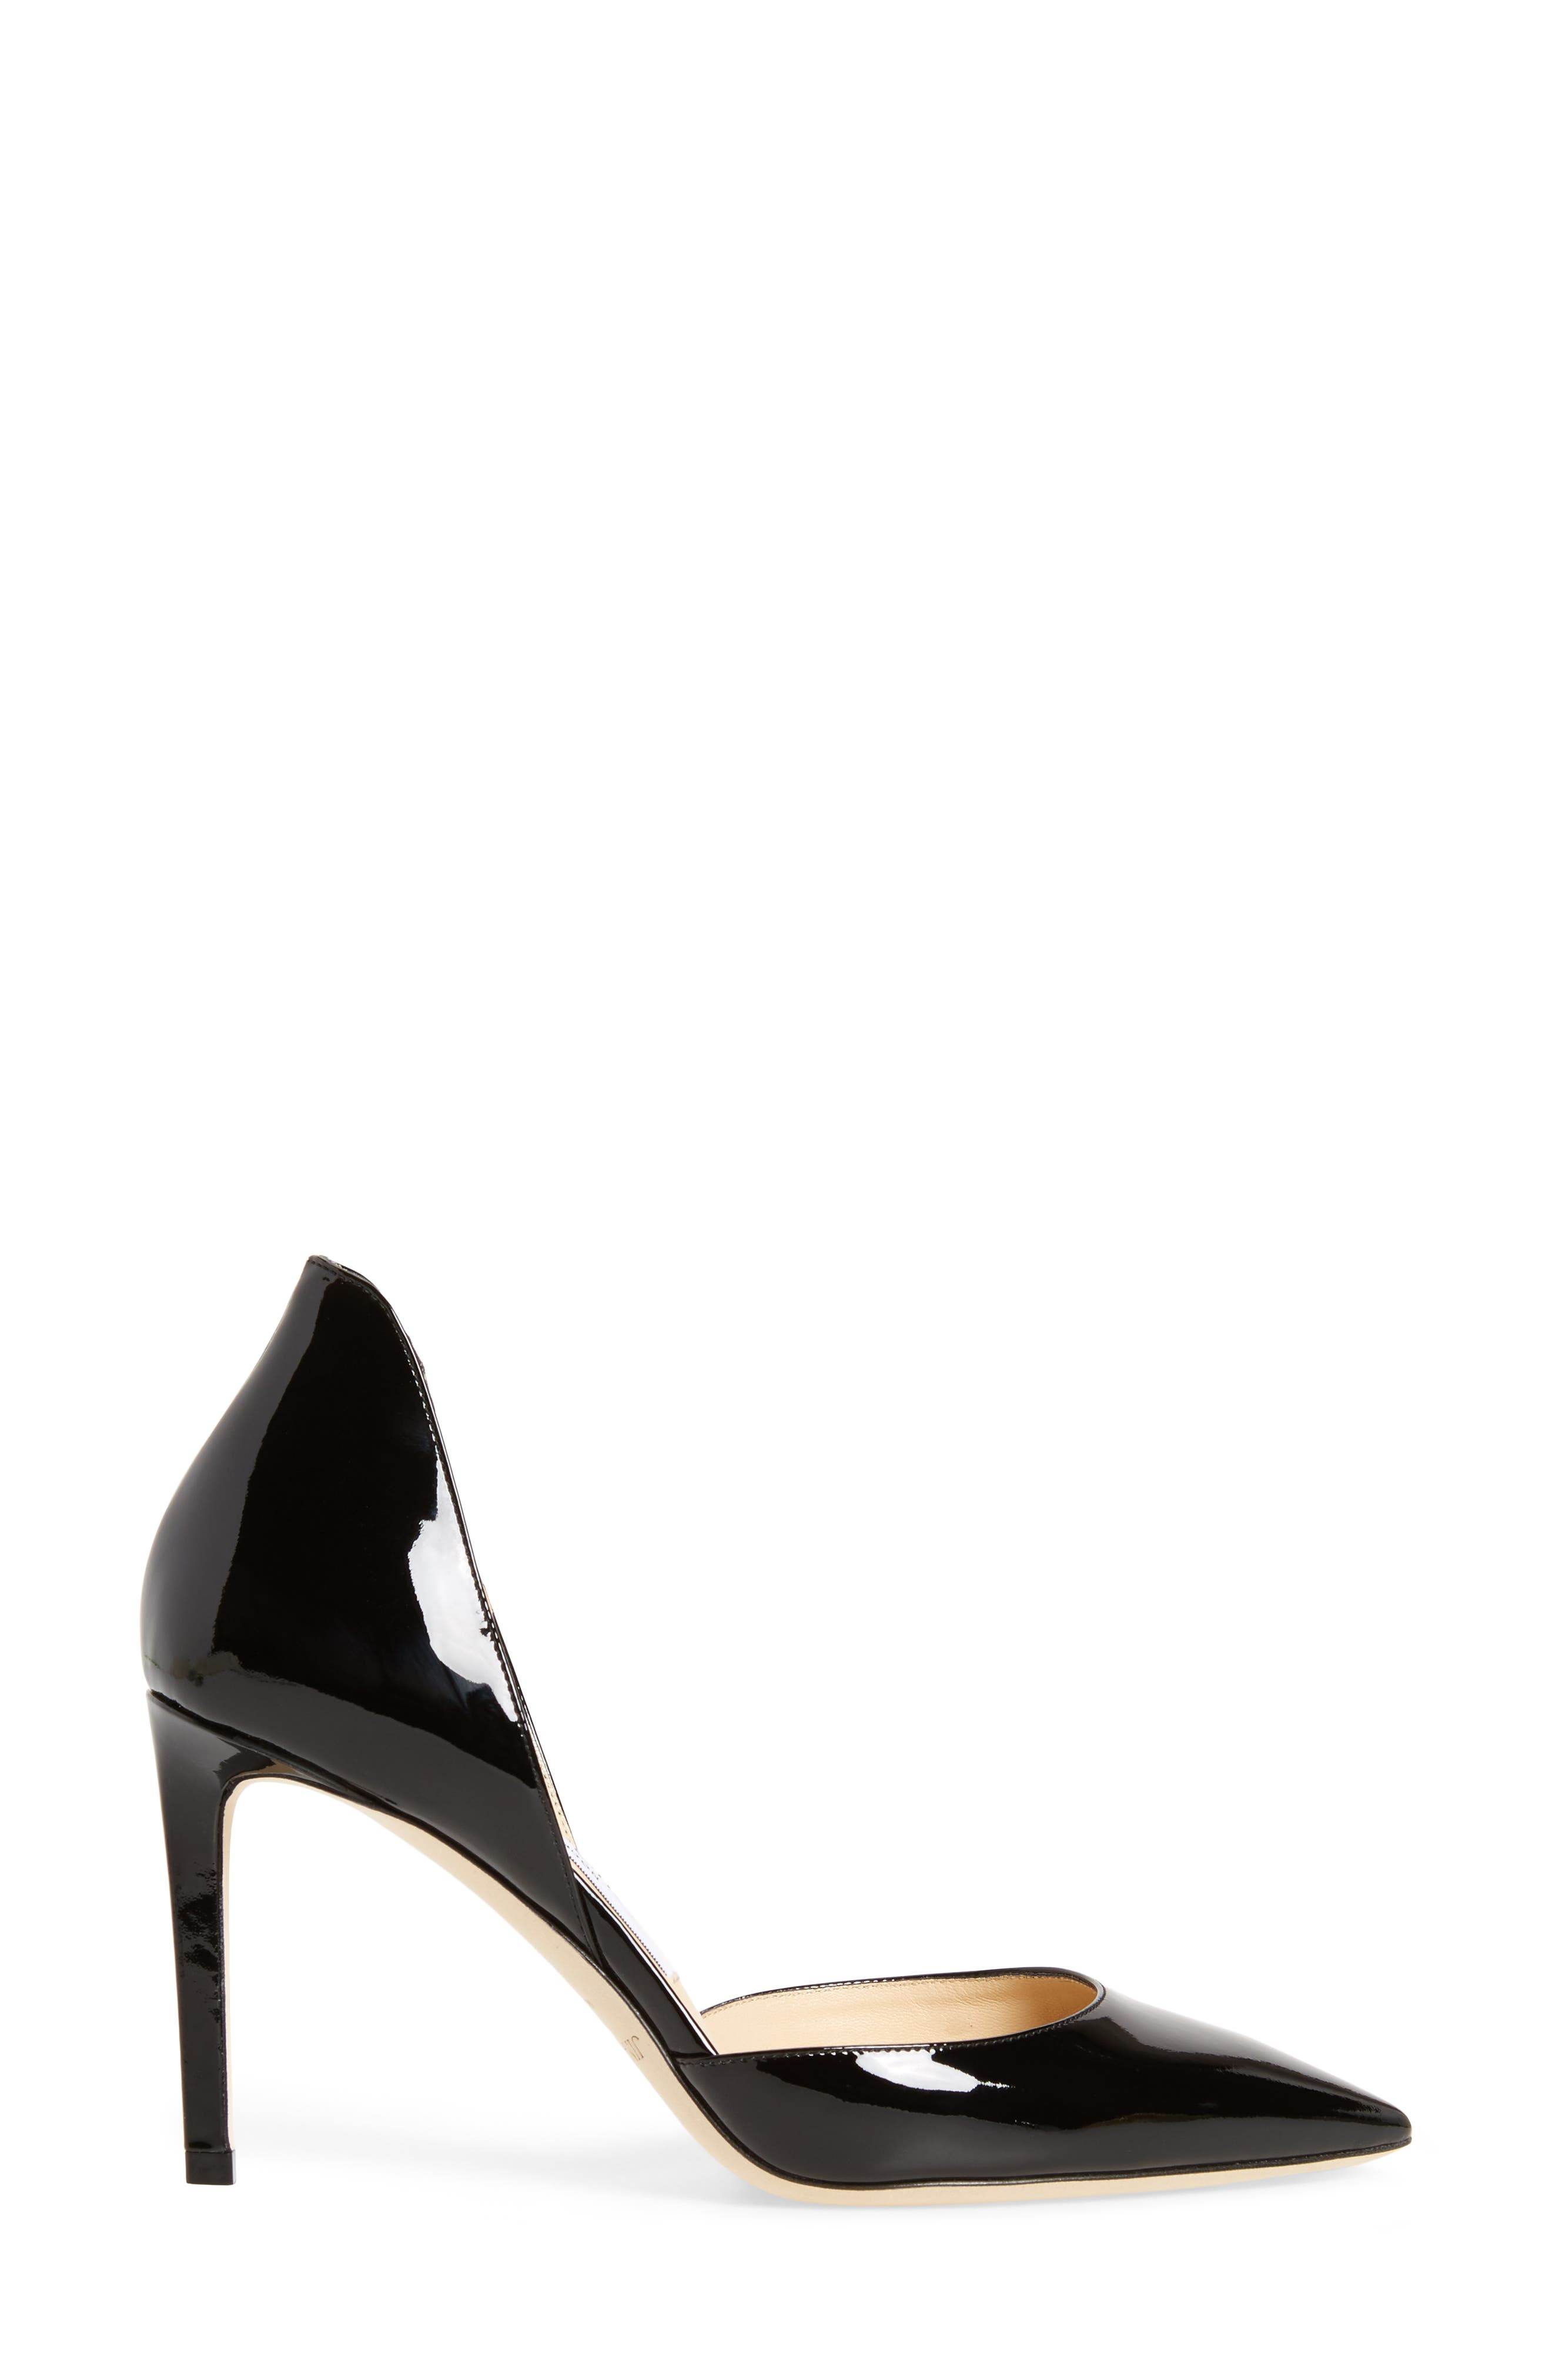 Alternate Image 3  - Jimmy Choo Liz d'Orsay Pump (Women)